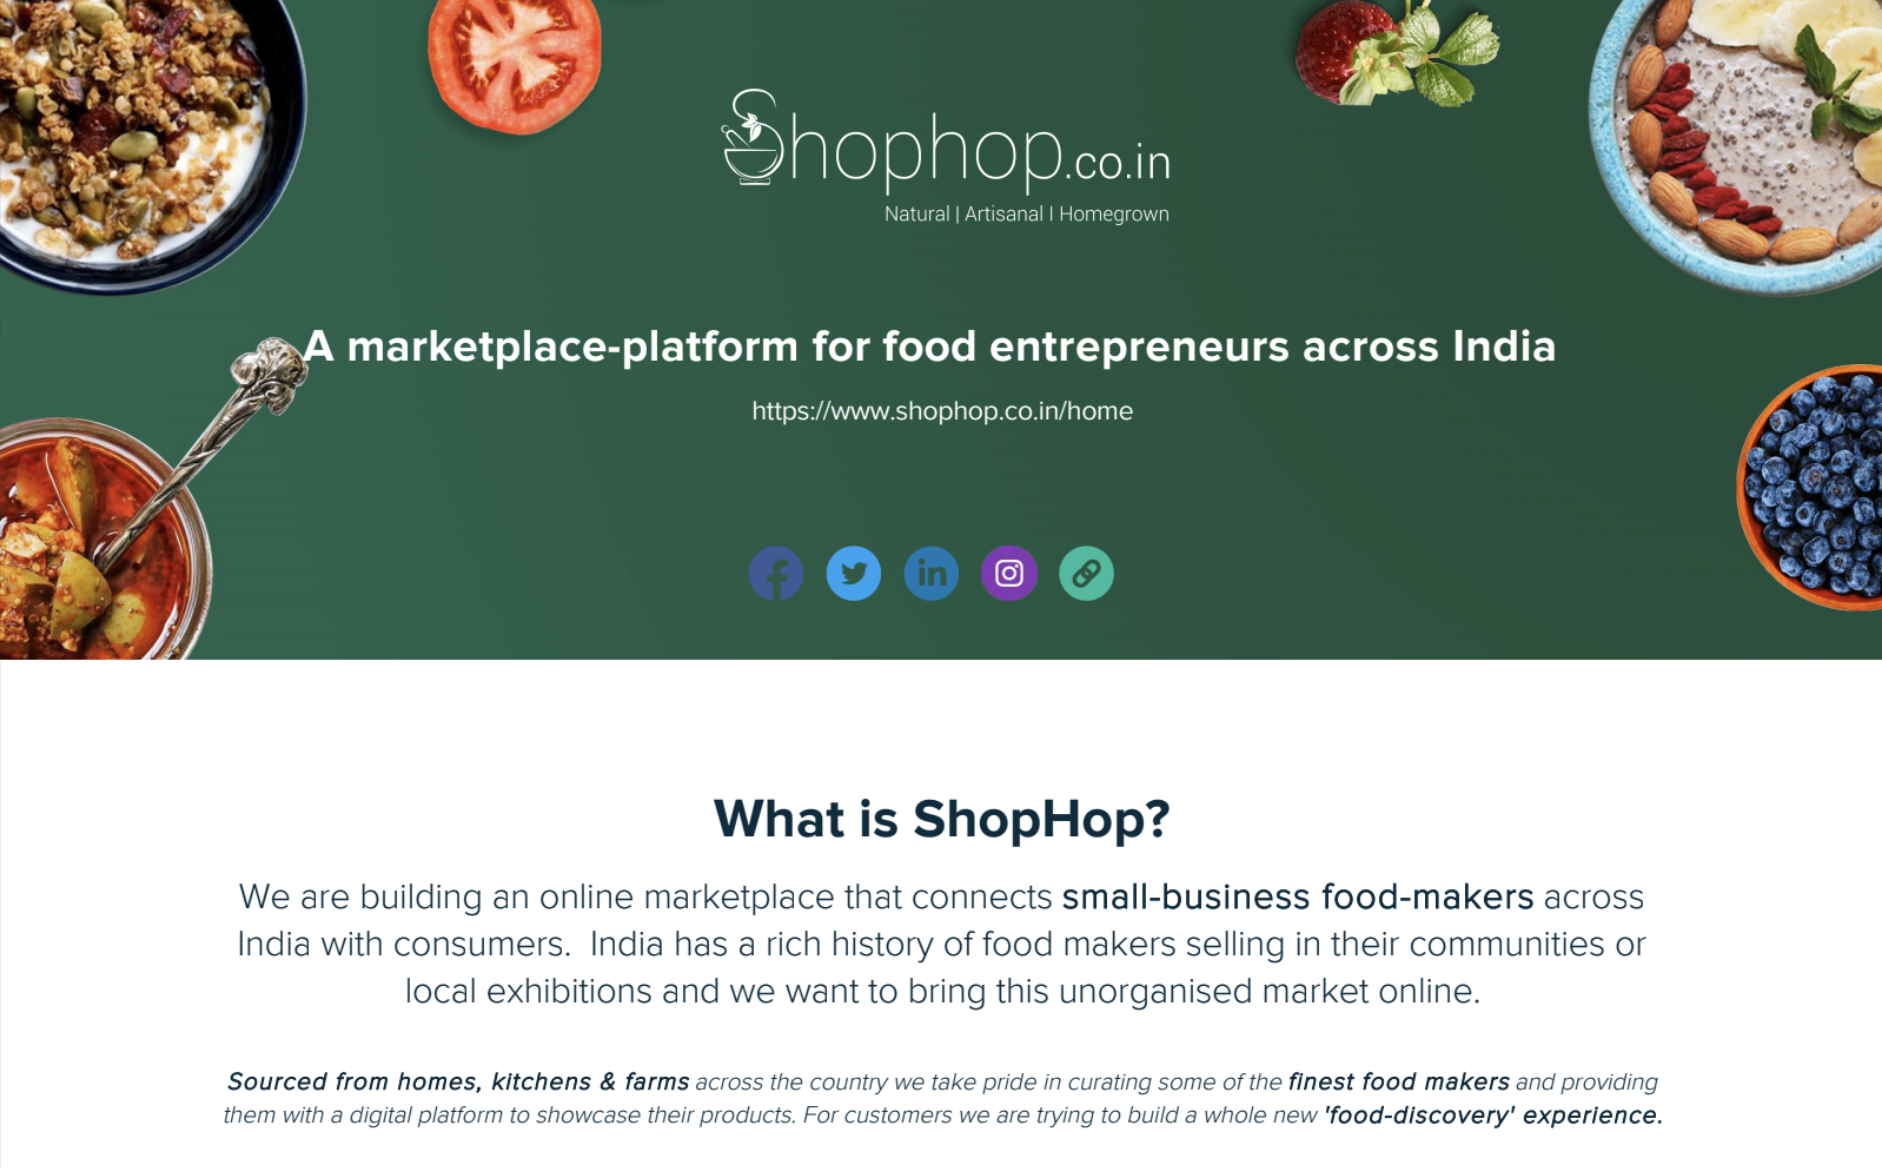 The header of ShopHop's 1-pager that made it to the inboxes of at least 200 angel investors in India..